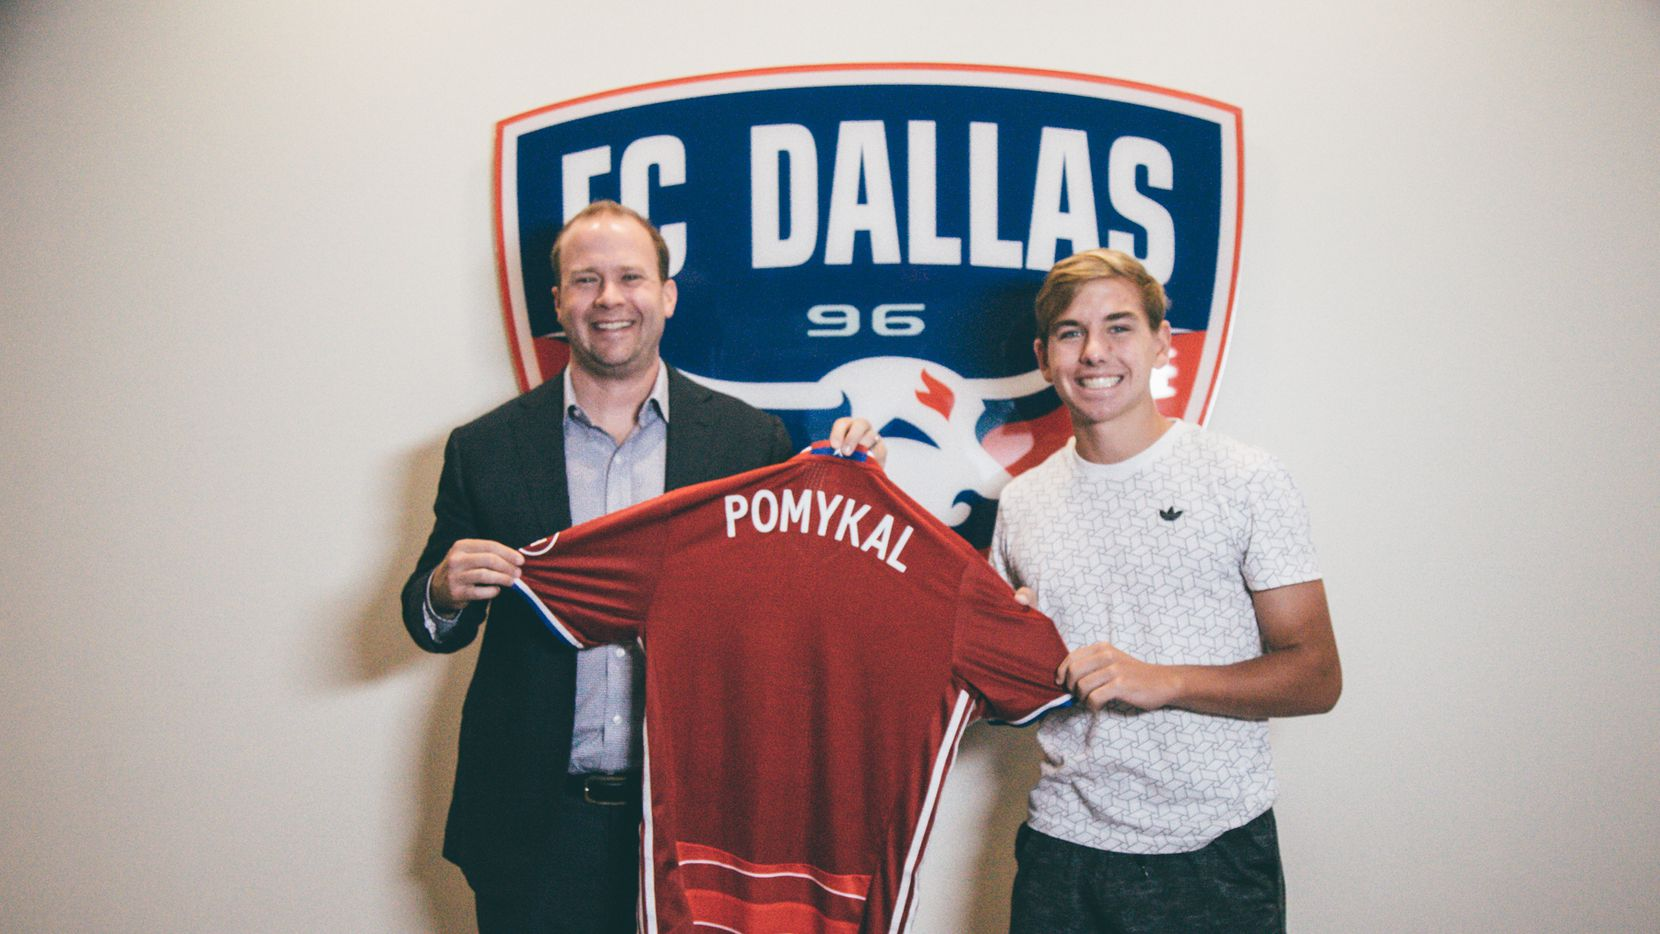 FC Dallas president Dan Hunt, left, is pictured with newest signing Paxton Pomykal, the MLS-record 15th homegrown signing by FC Dallas. Pomykal signed on Thursday, Sept. 8, 2016.